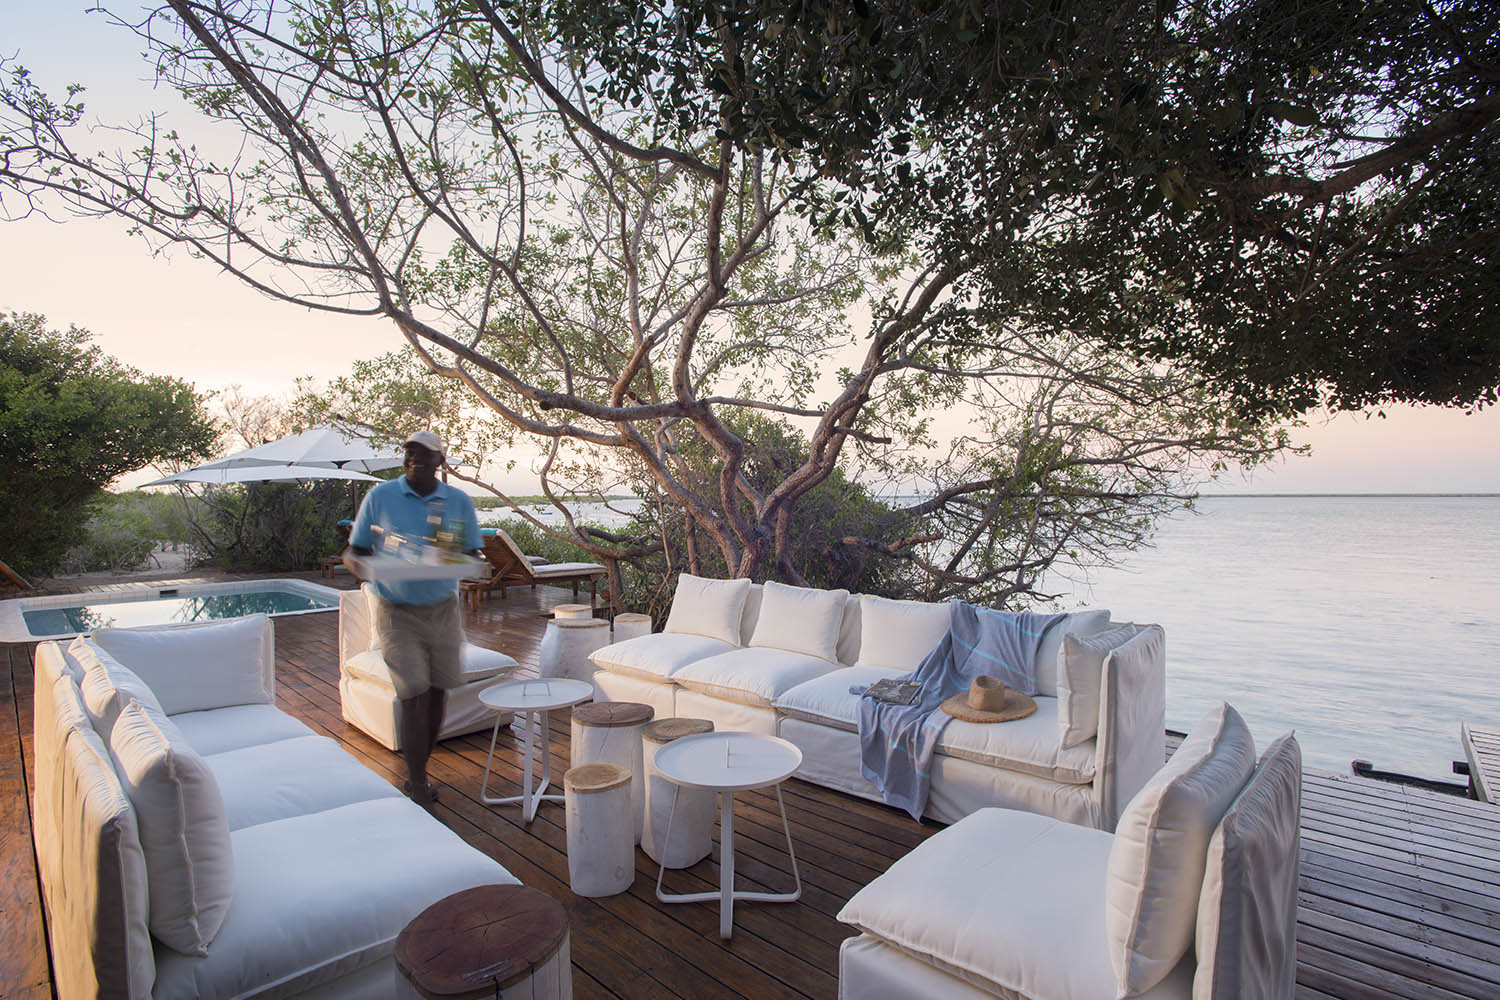 rio azul mozambique-lodges-zambia-in-style-vilanculos-luxurious-location-drinks-views